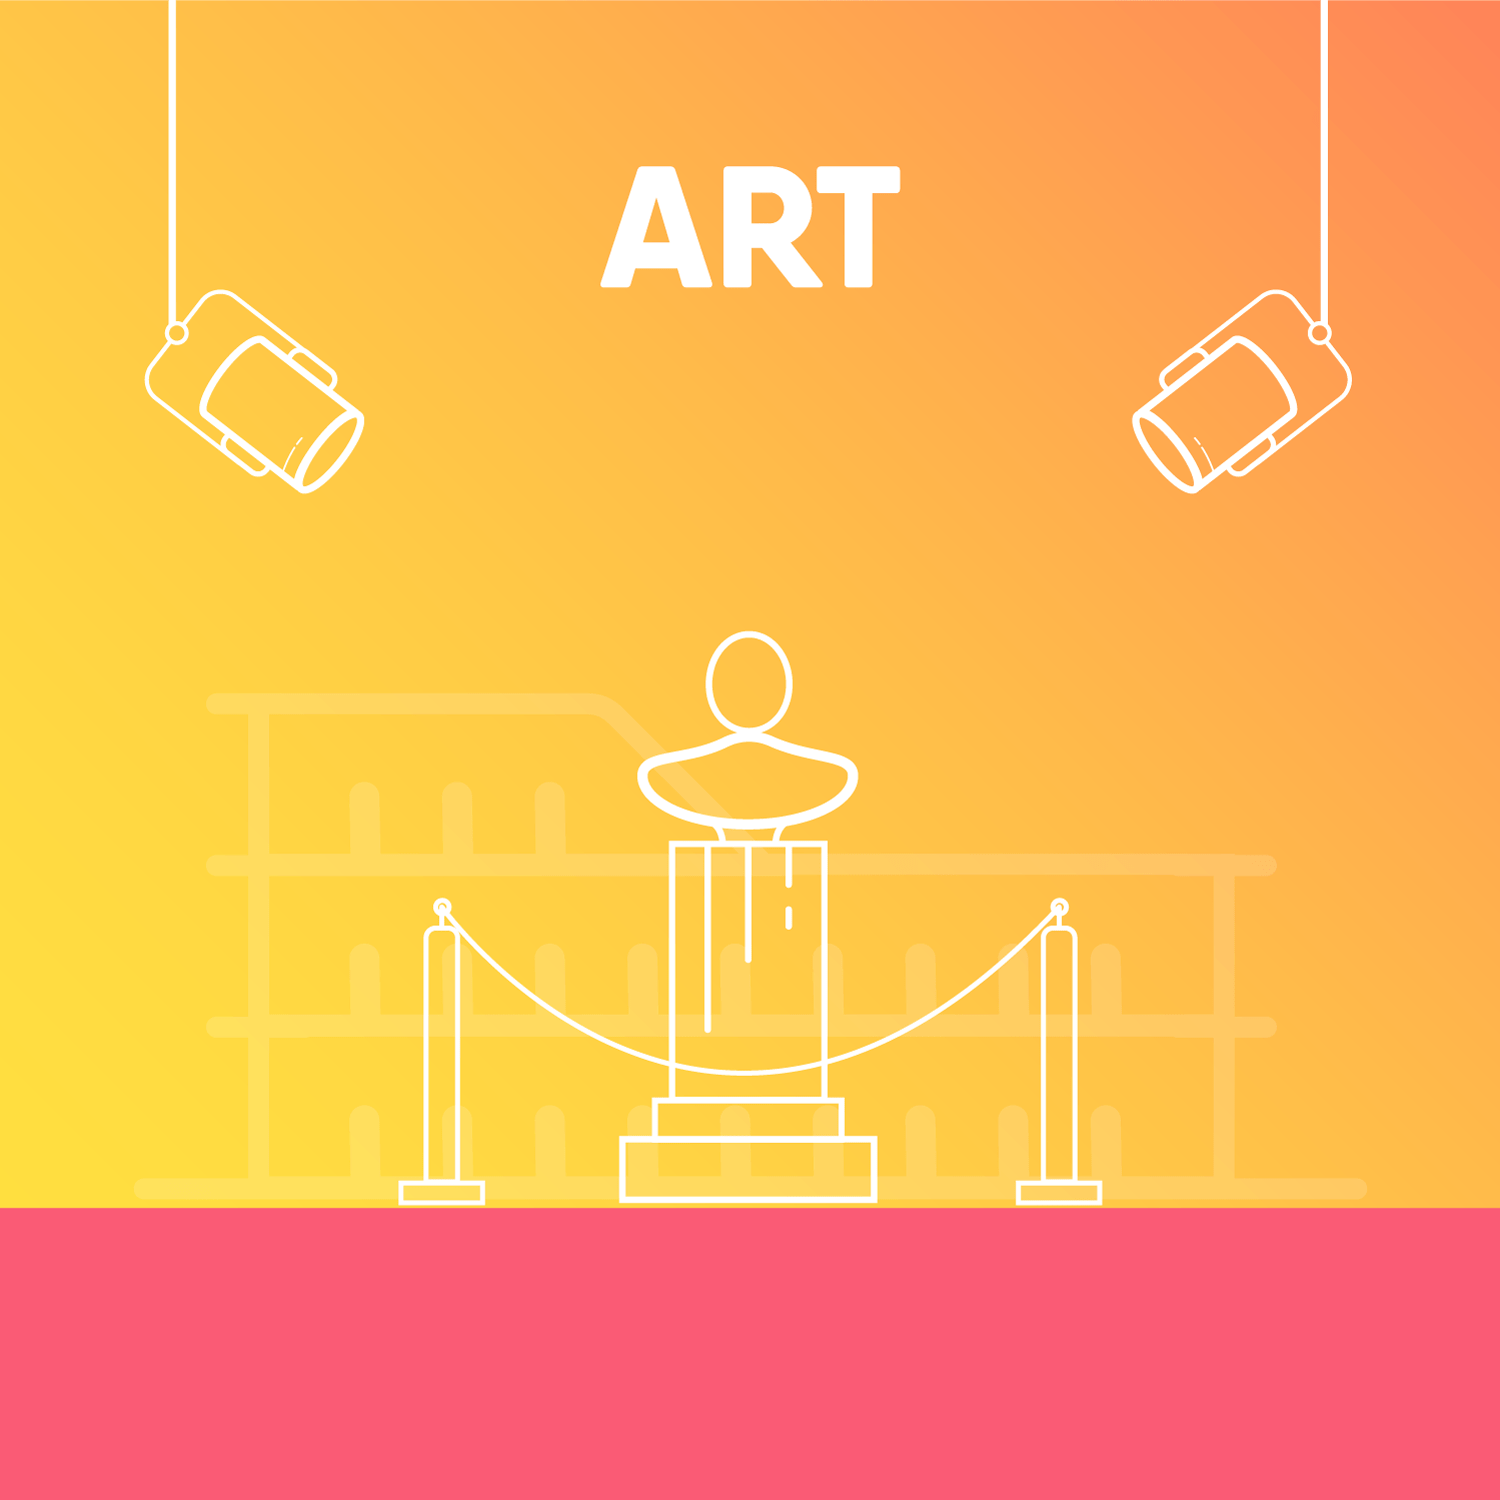 Illustrations for different categories